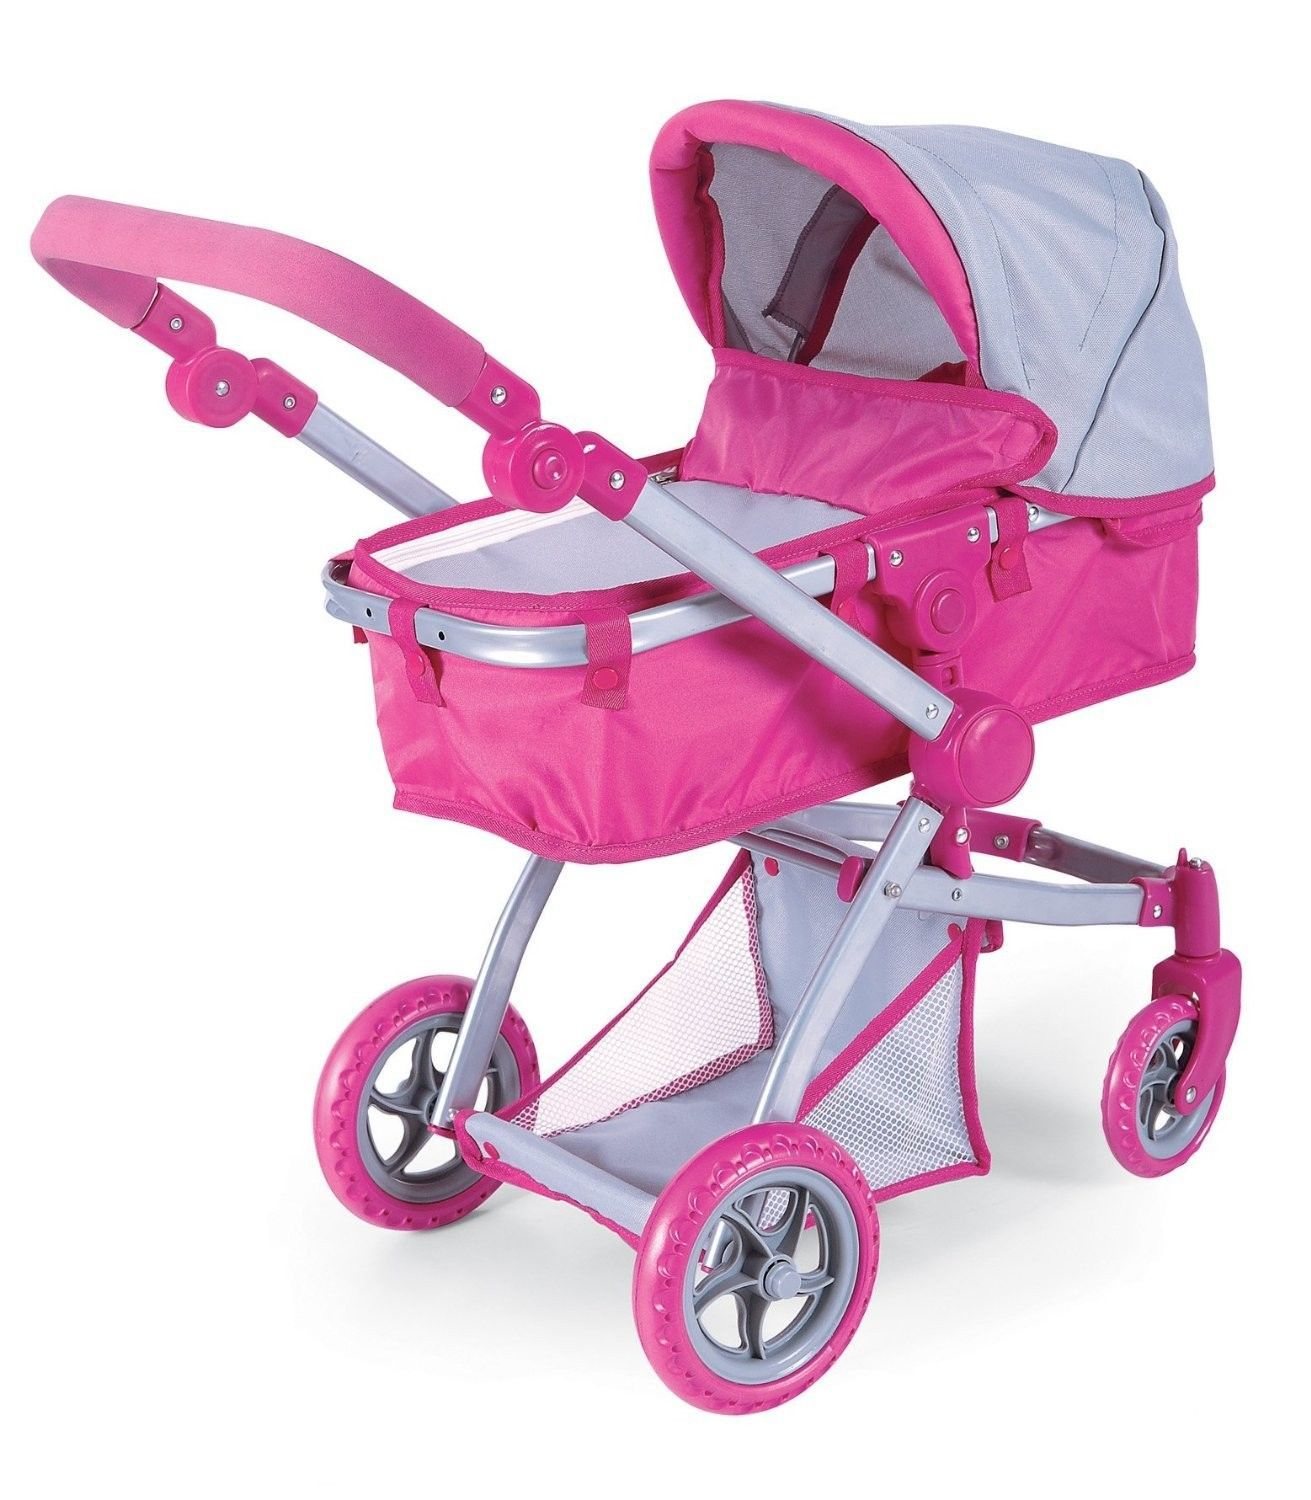 Toys For Strollers : Bugaboo doll stroller play toy kids keep em busy toddler